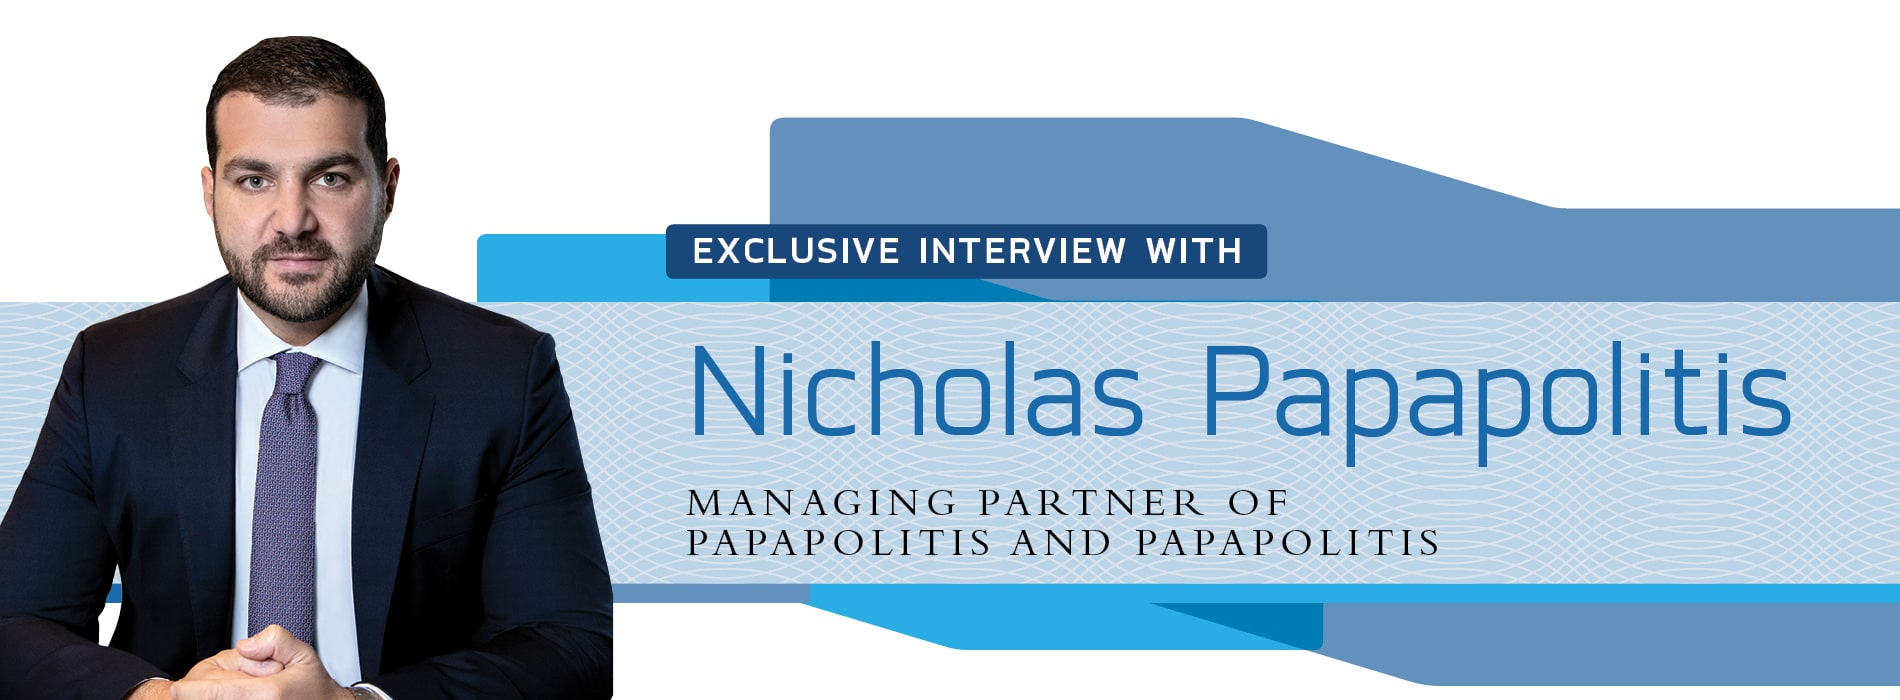 Interview with Nicholas Papapolitis,Managing Partner of Papapolitis and Papapolitis